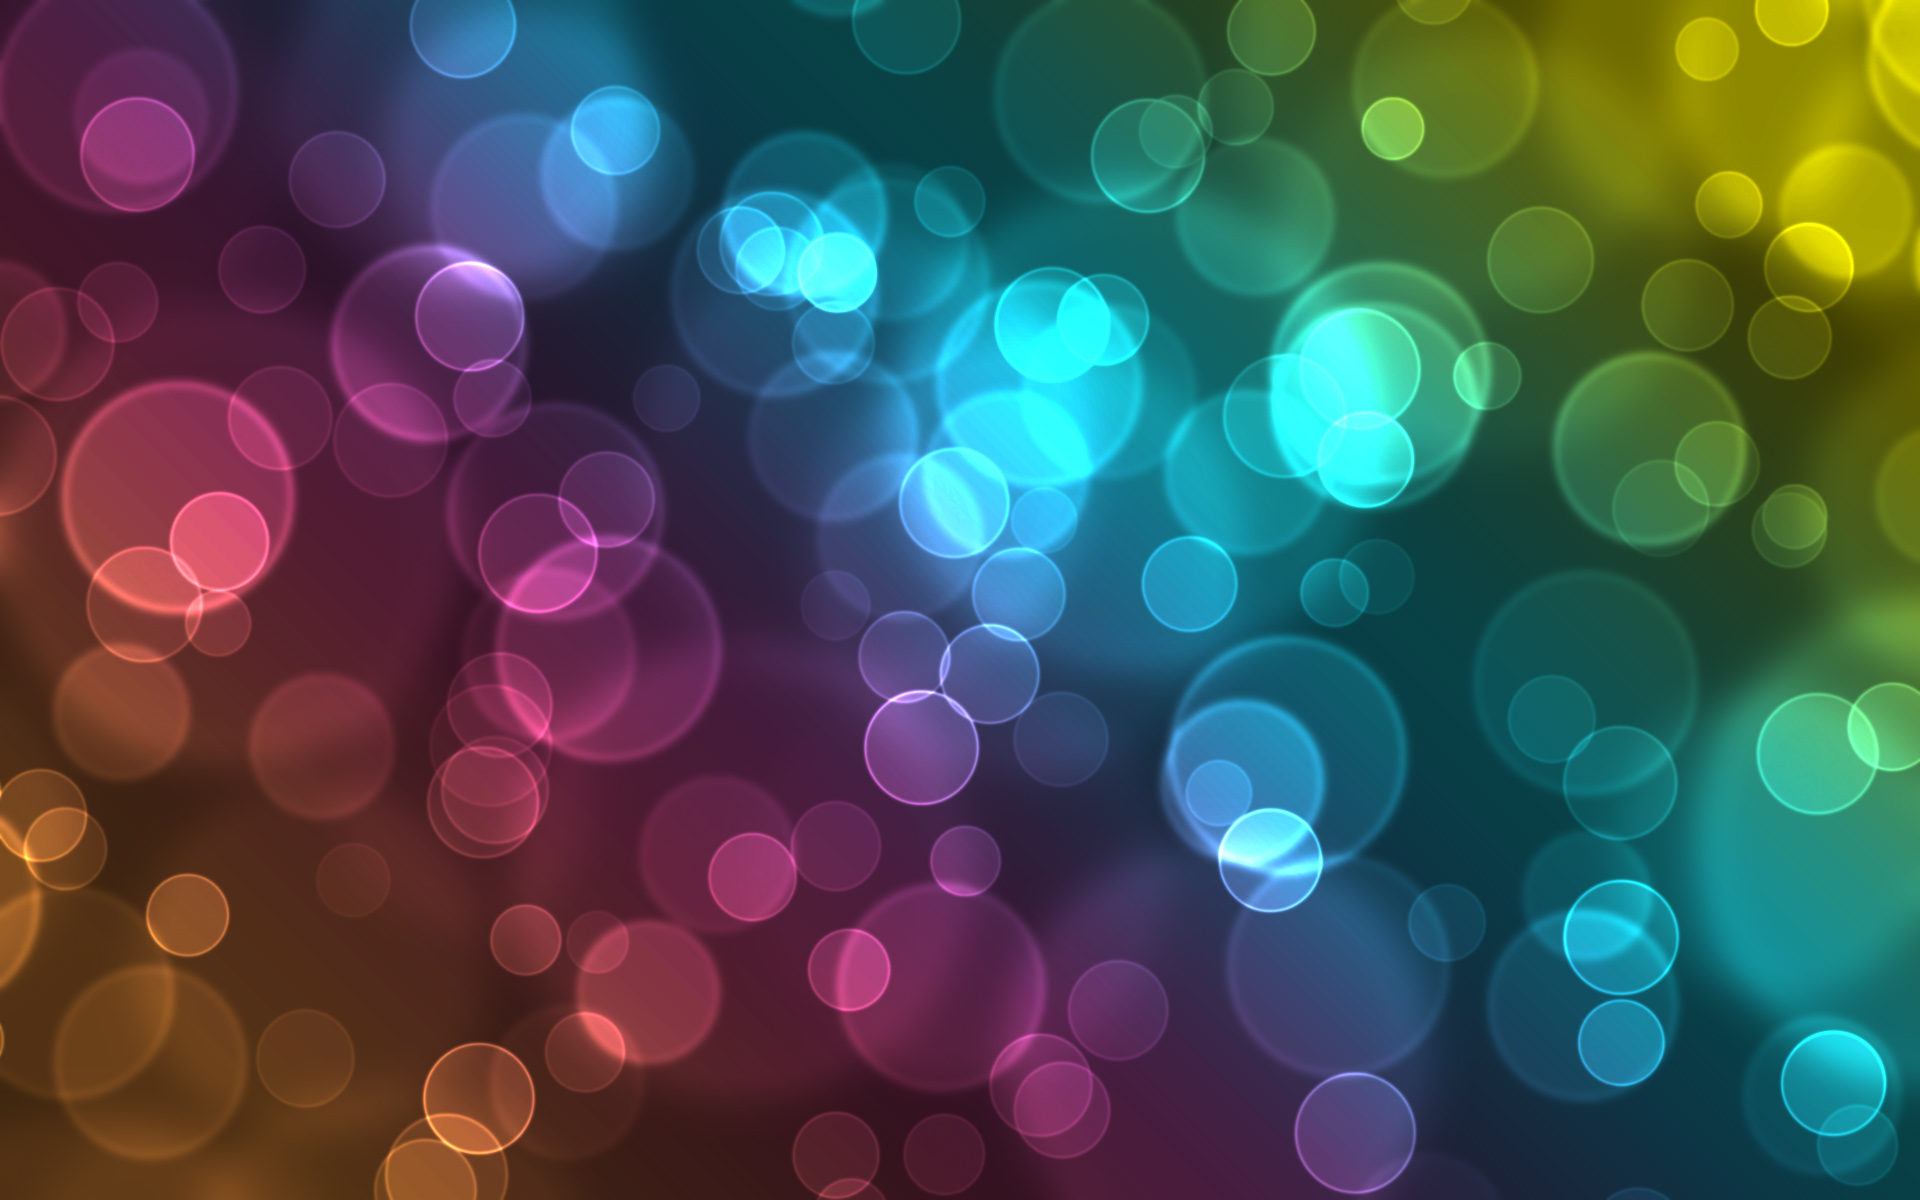 Colorful Bubbles Wallpaper